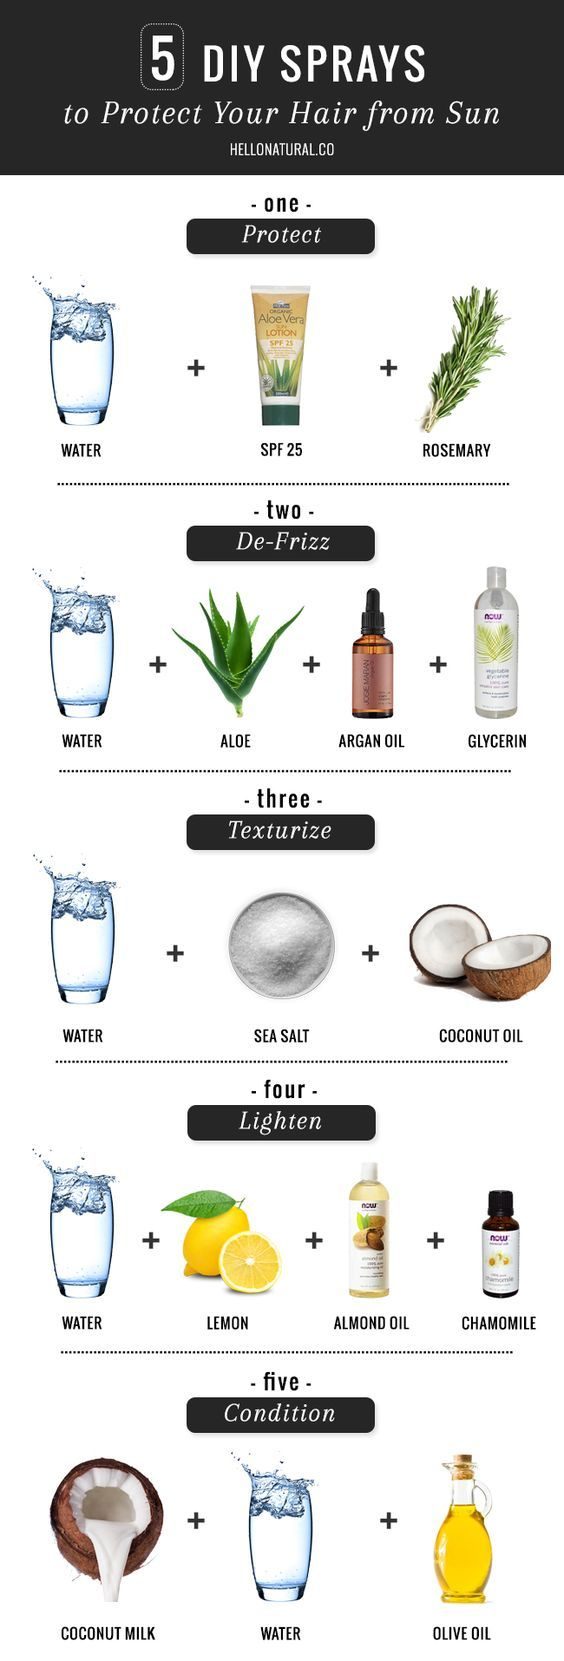 5 DIY Ways To Protect Your Hair from Sun, Heat   Humidity | http://hellonatural.co/how-to-protect-your-hair-from-sun-heat-humidity-with-diy-sprays/: